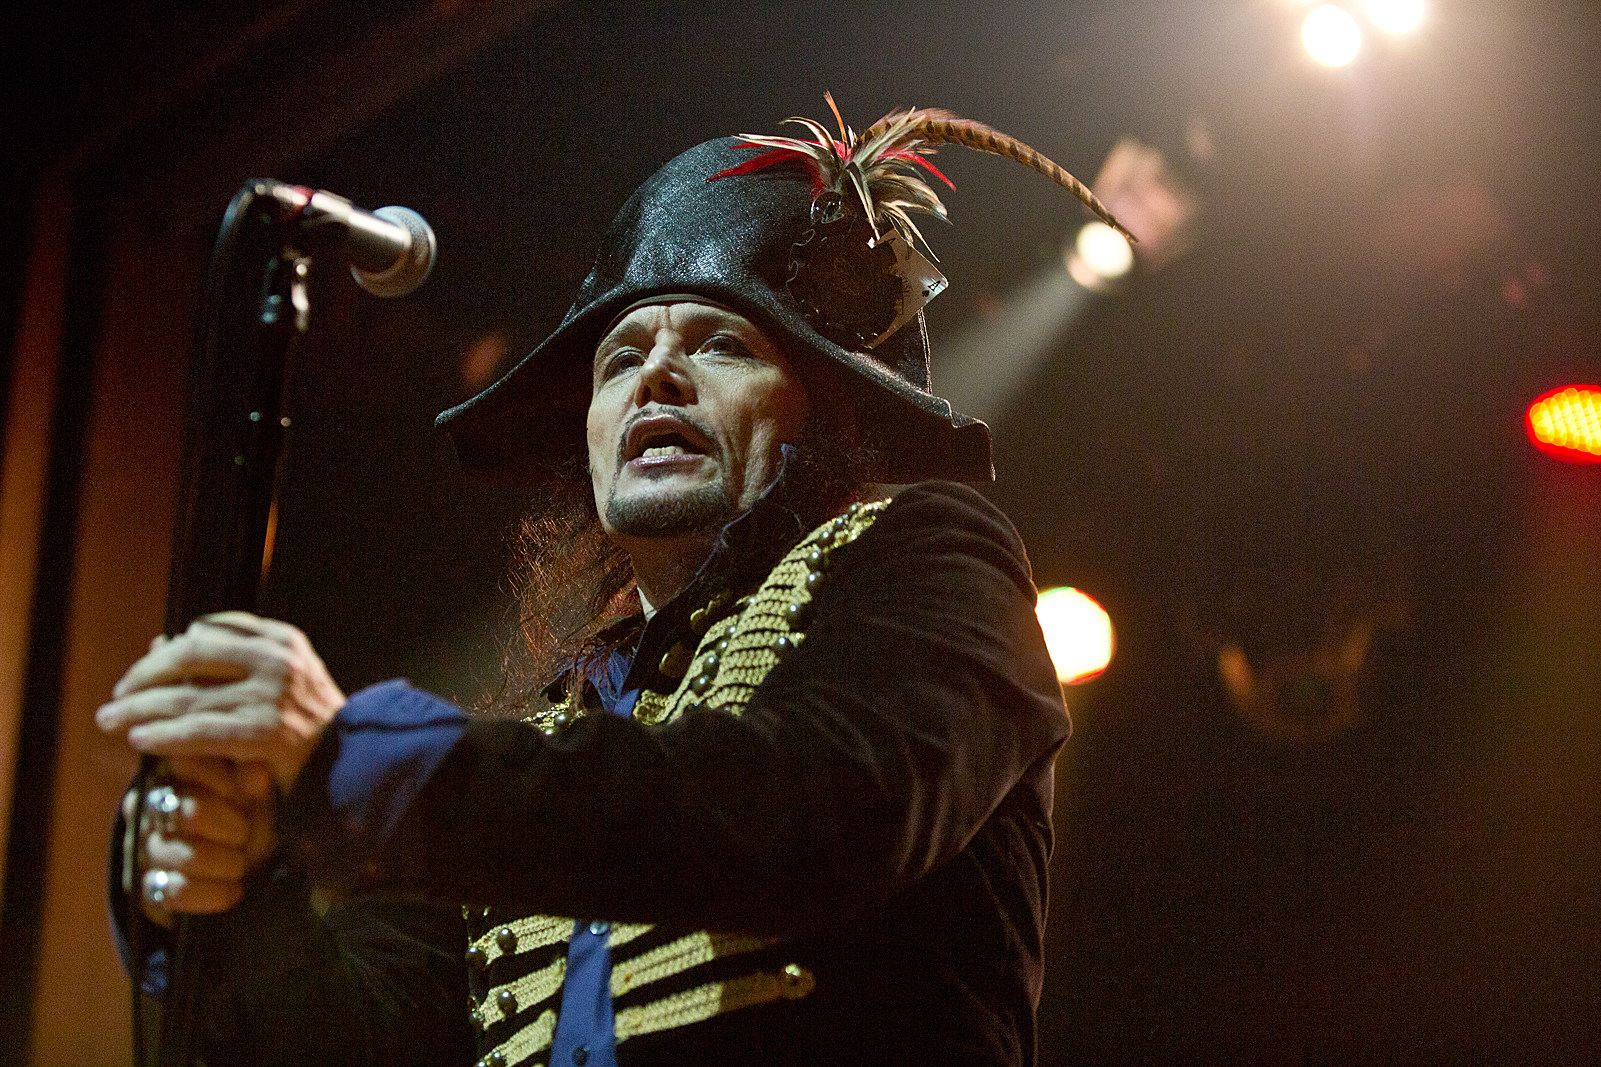 Adam Ant at Webster Hall